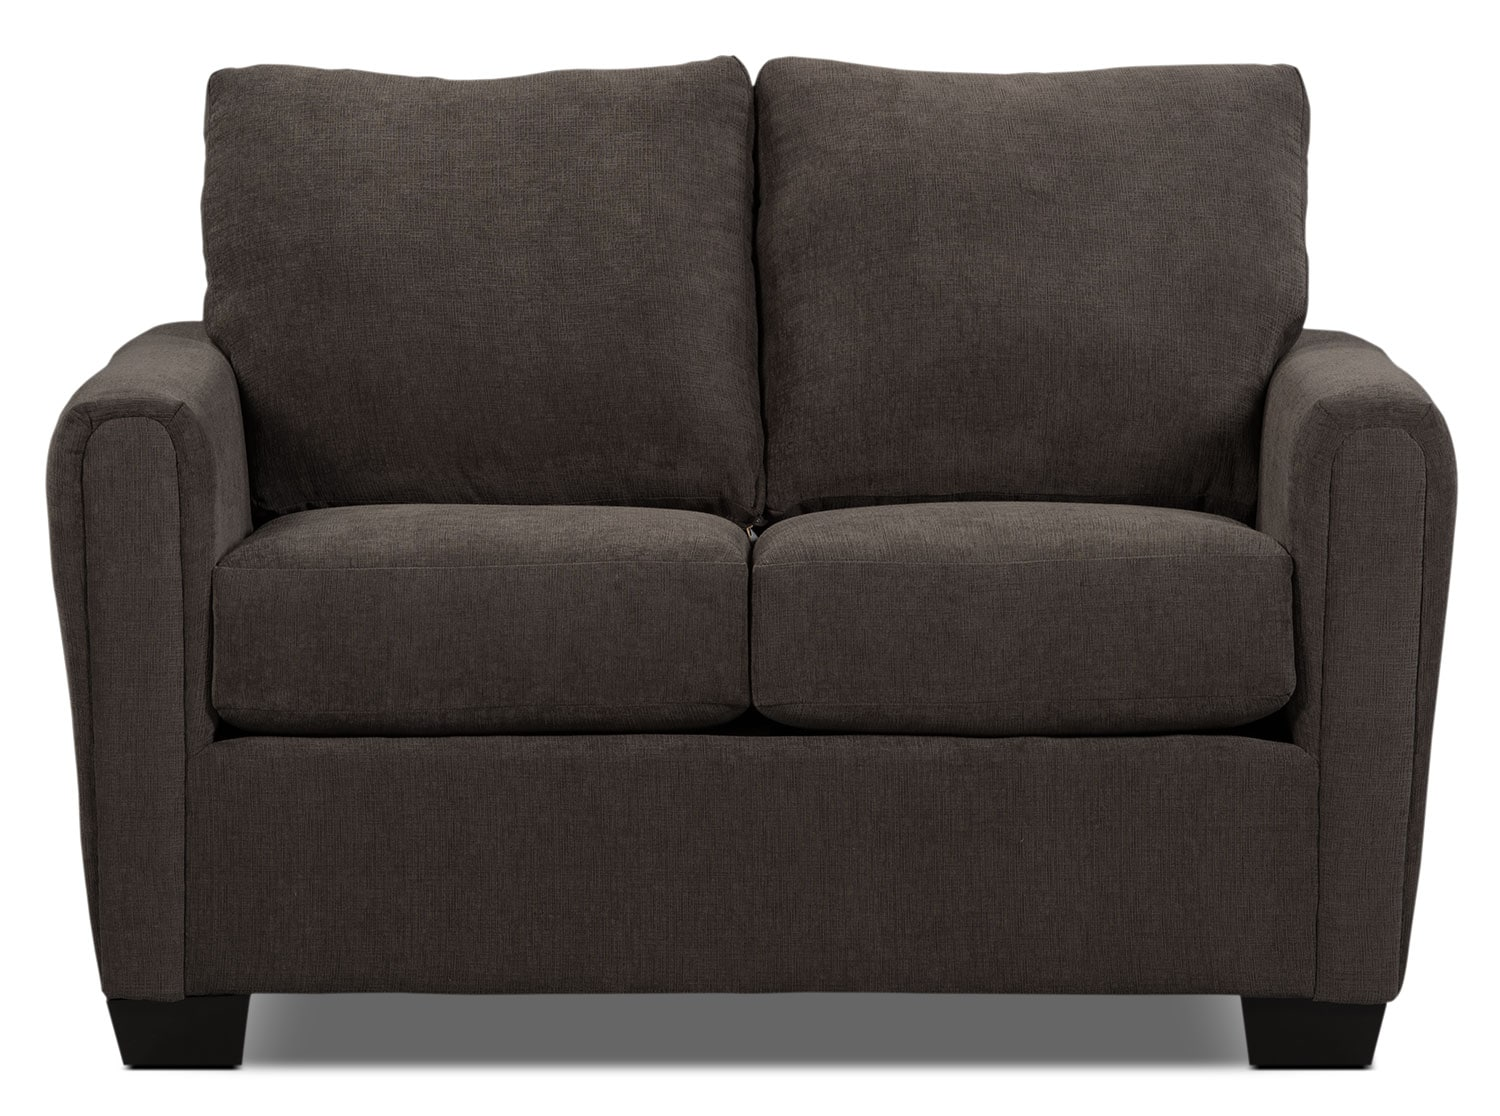 Spa Collection Chenille Loveseat Charcoal The Brick